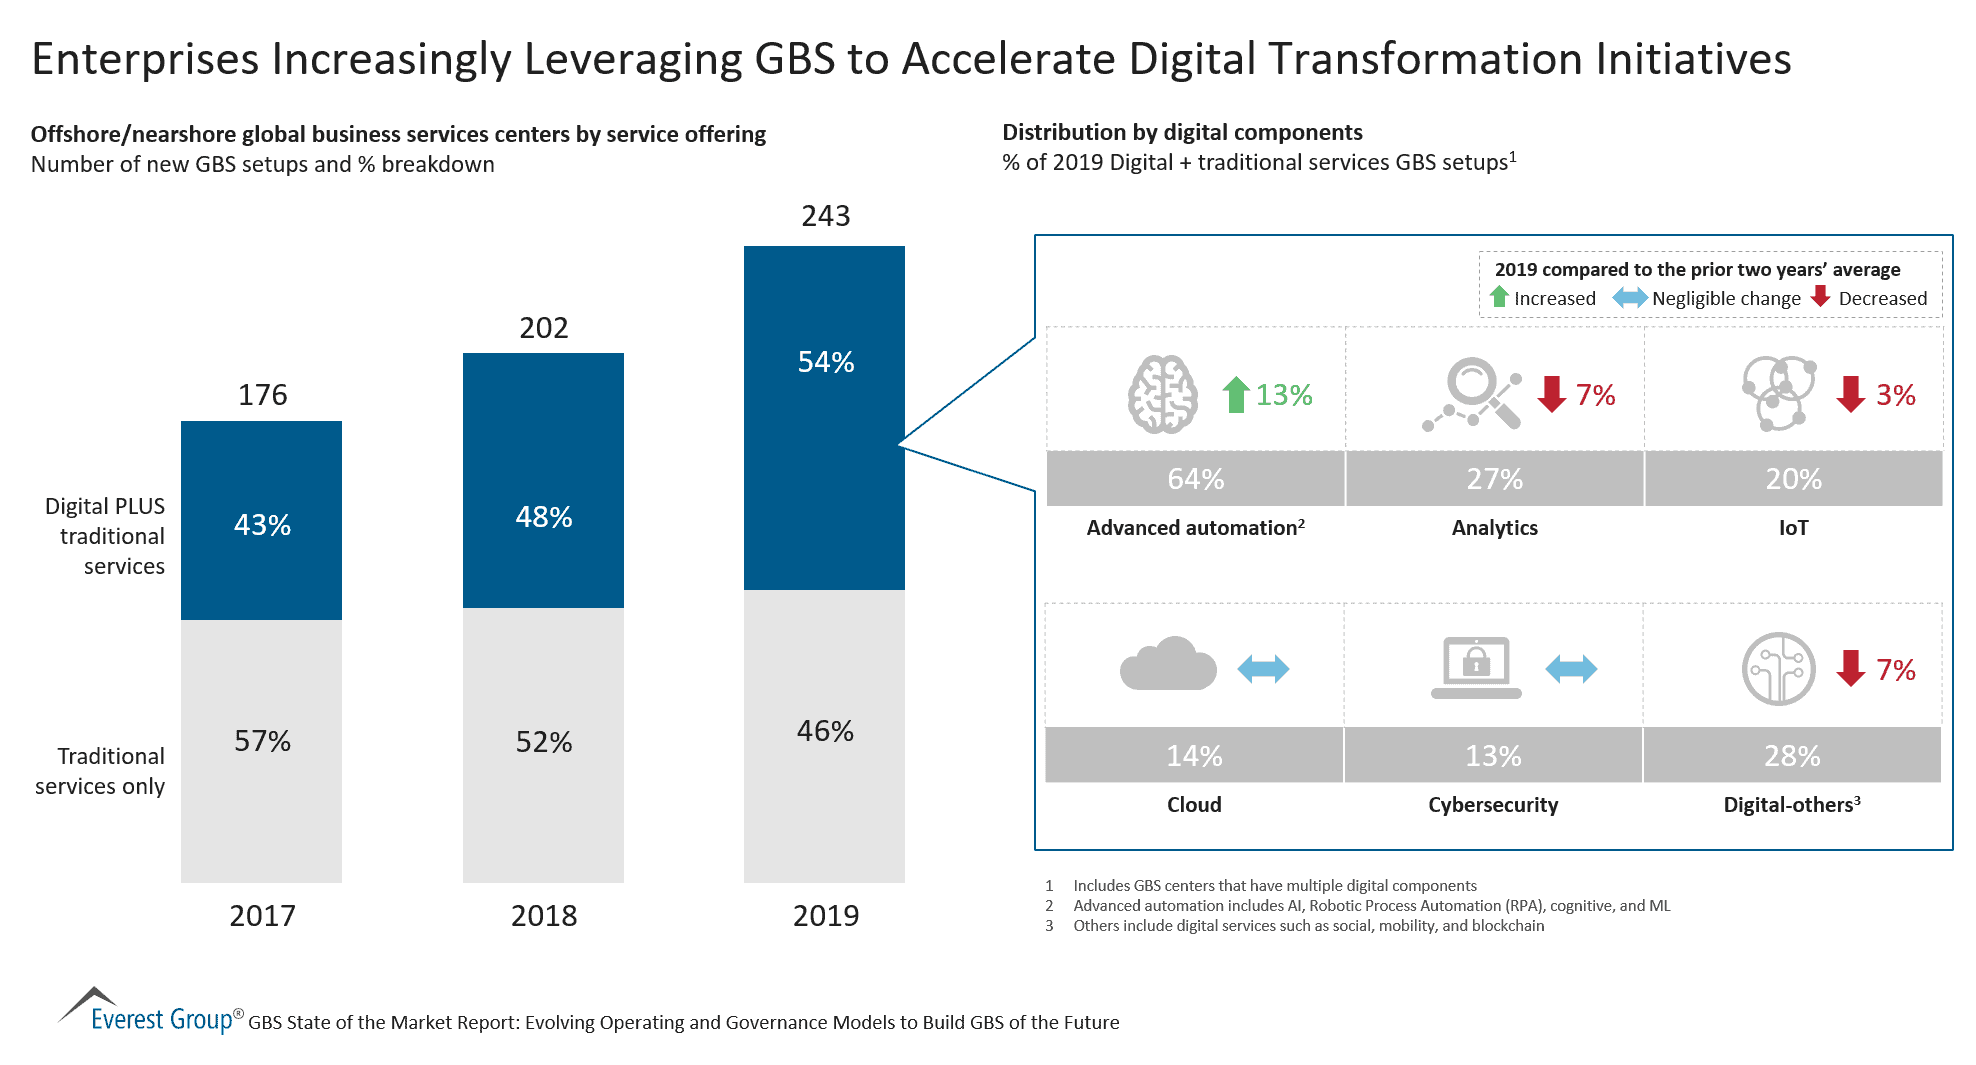 Enterprises Increasingly Leveraging GBS to Accelerate Digital Transformation Initiatives